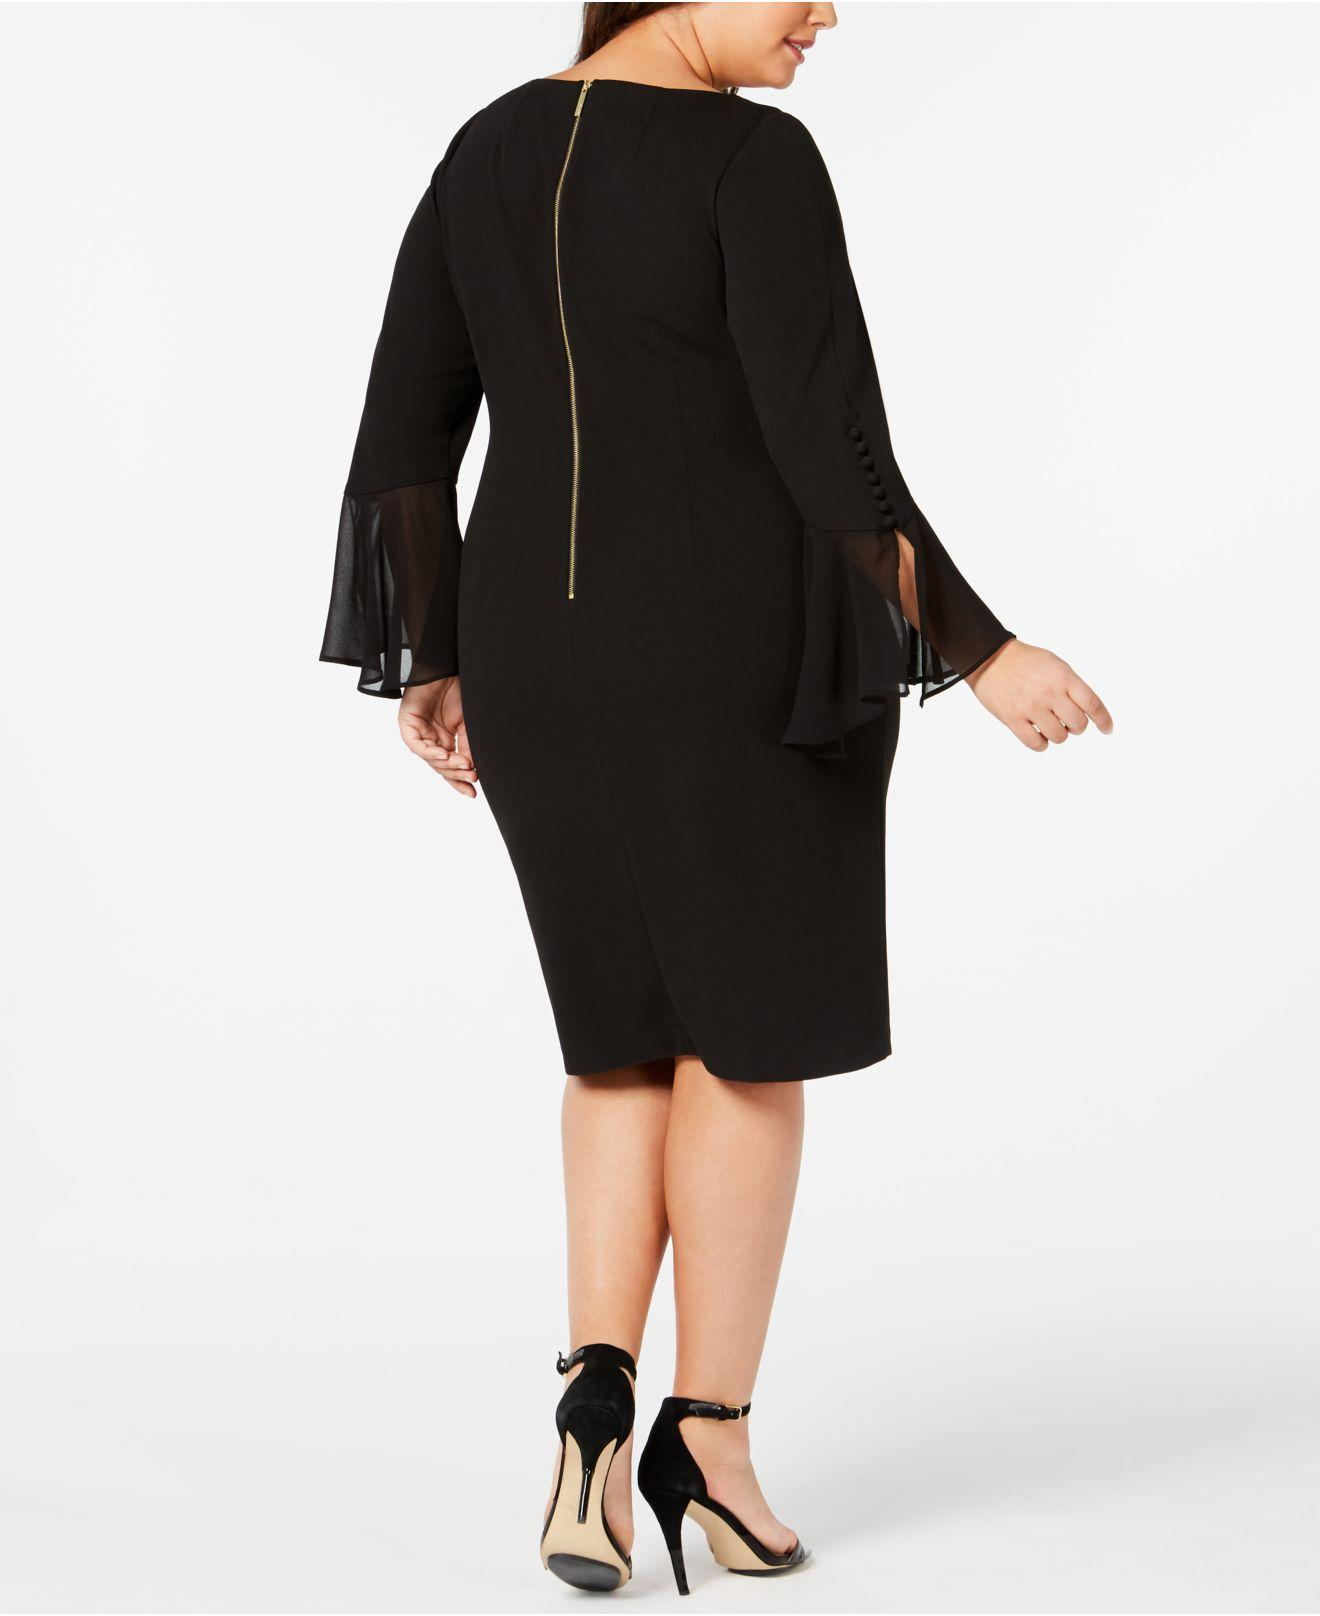 2ed2321bc78 Calvin Klein Plus Size Illusion Bell-sleeve Dress in Black - Lyst